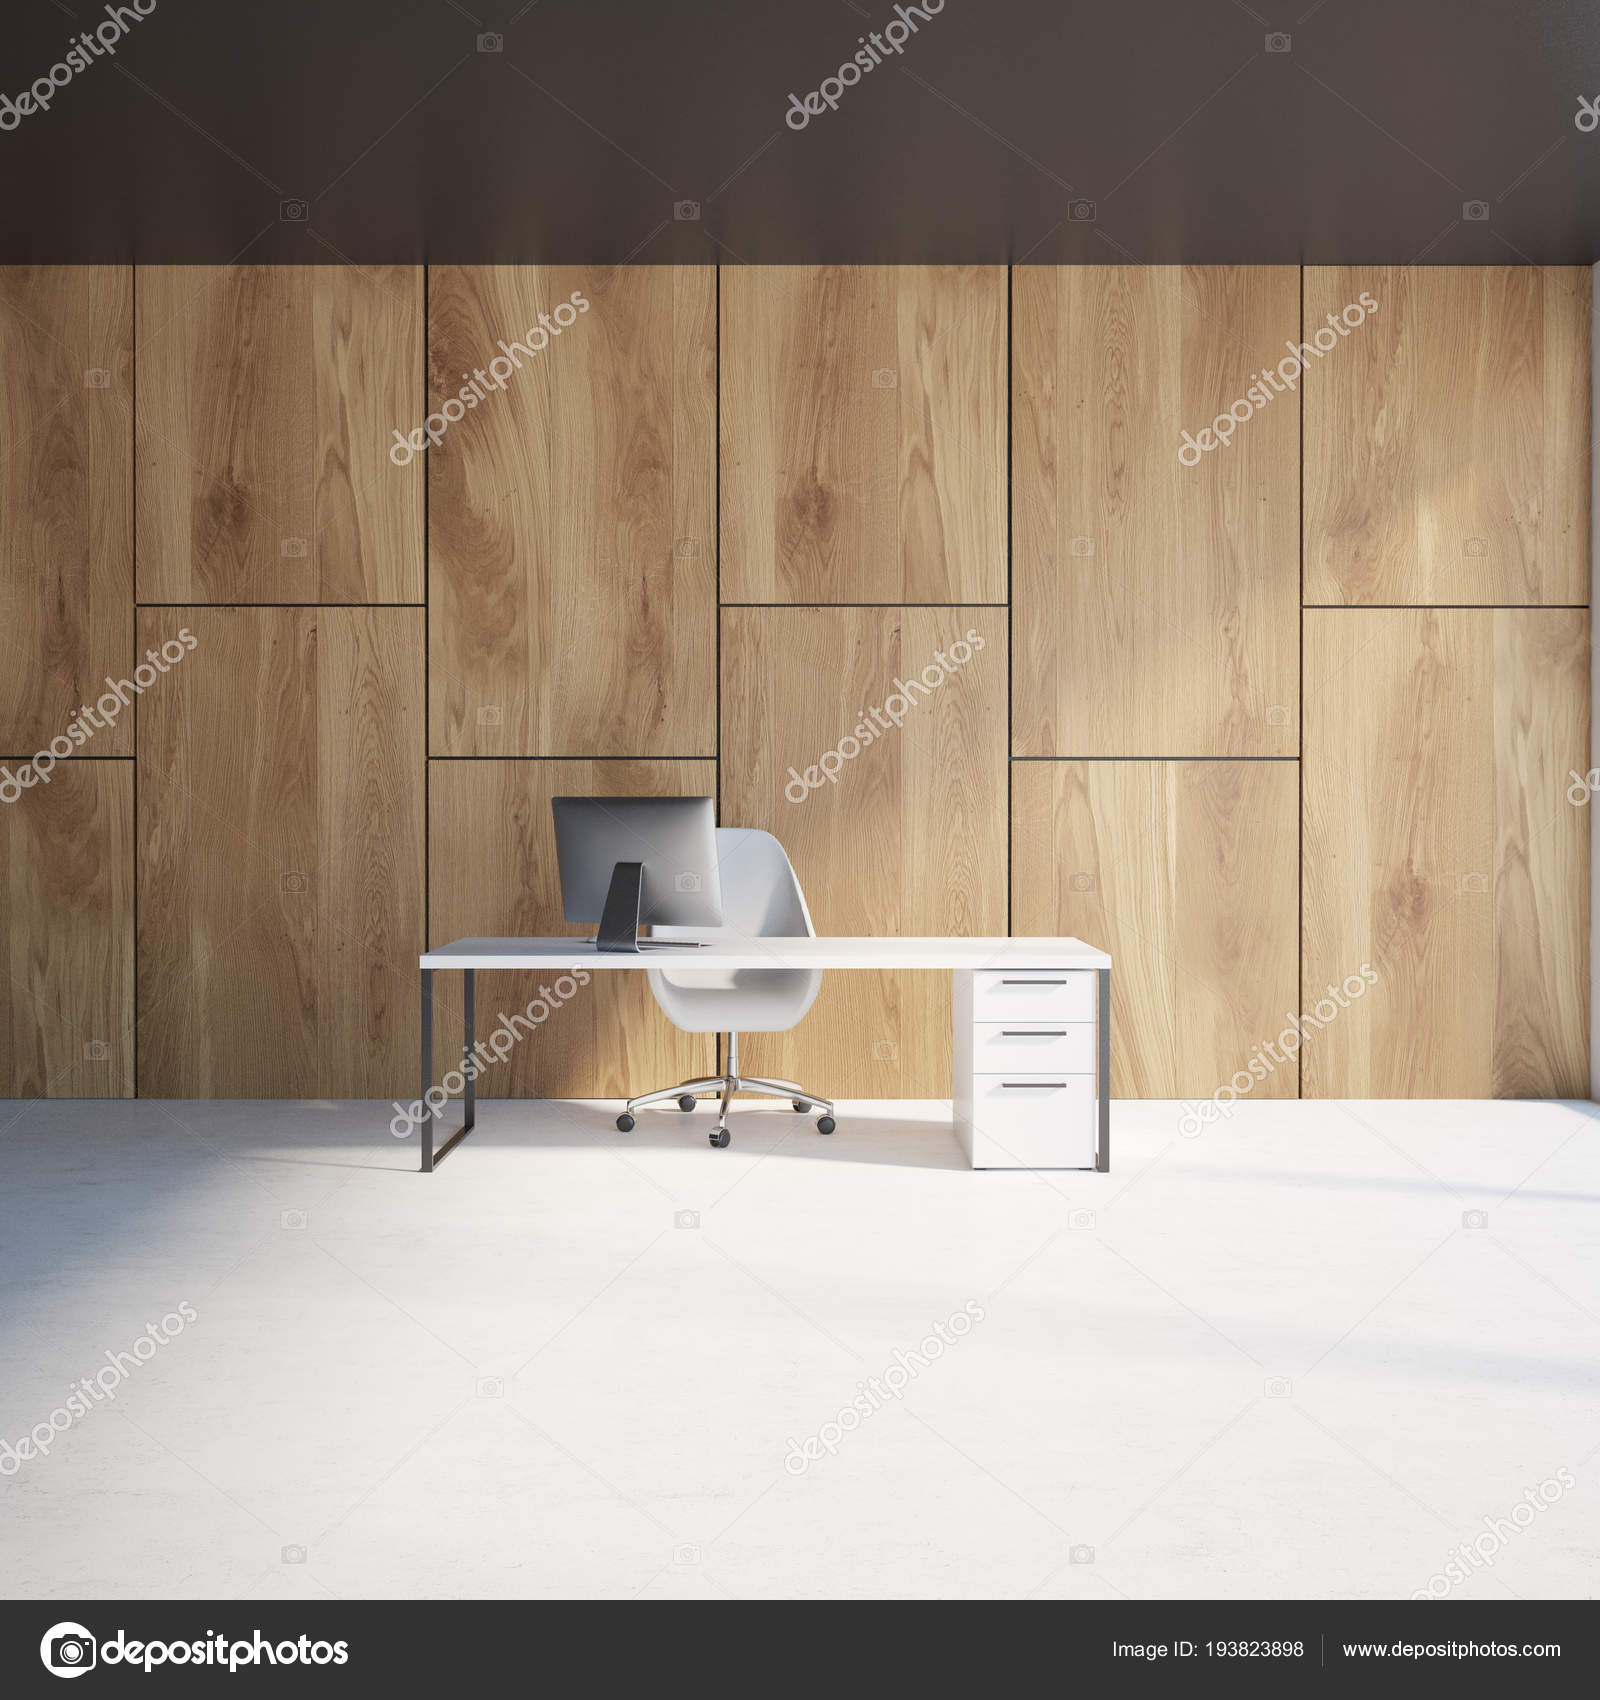 Luxury ceo office | Wooden Wall Luxury Ceo Office Interior ...